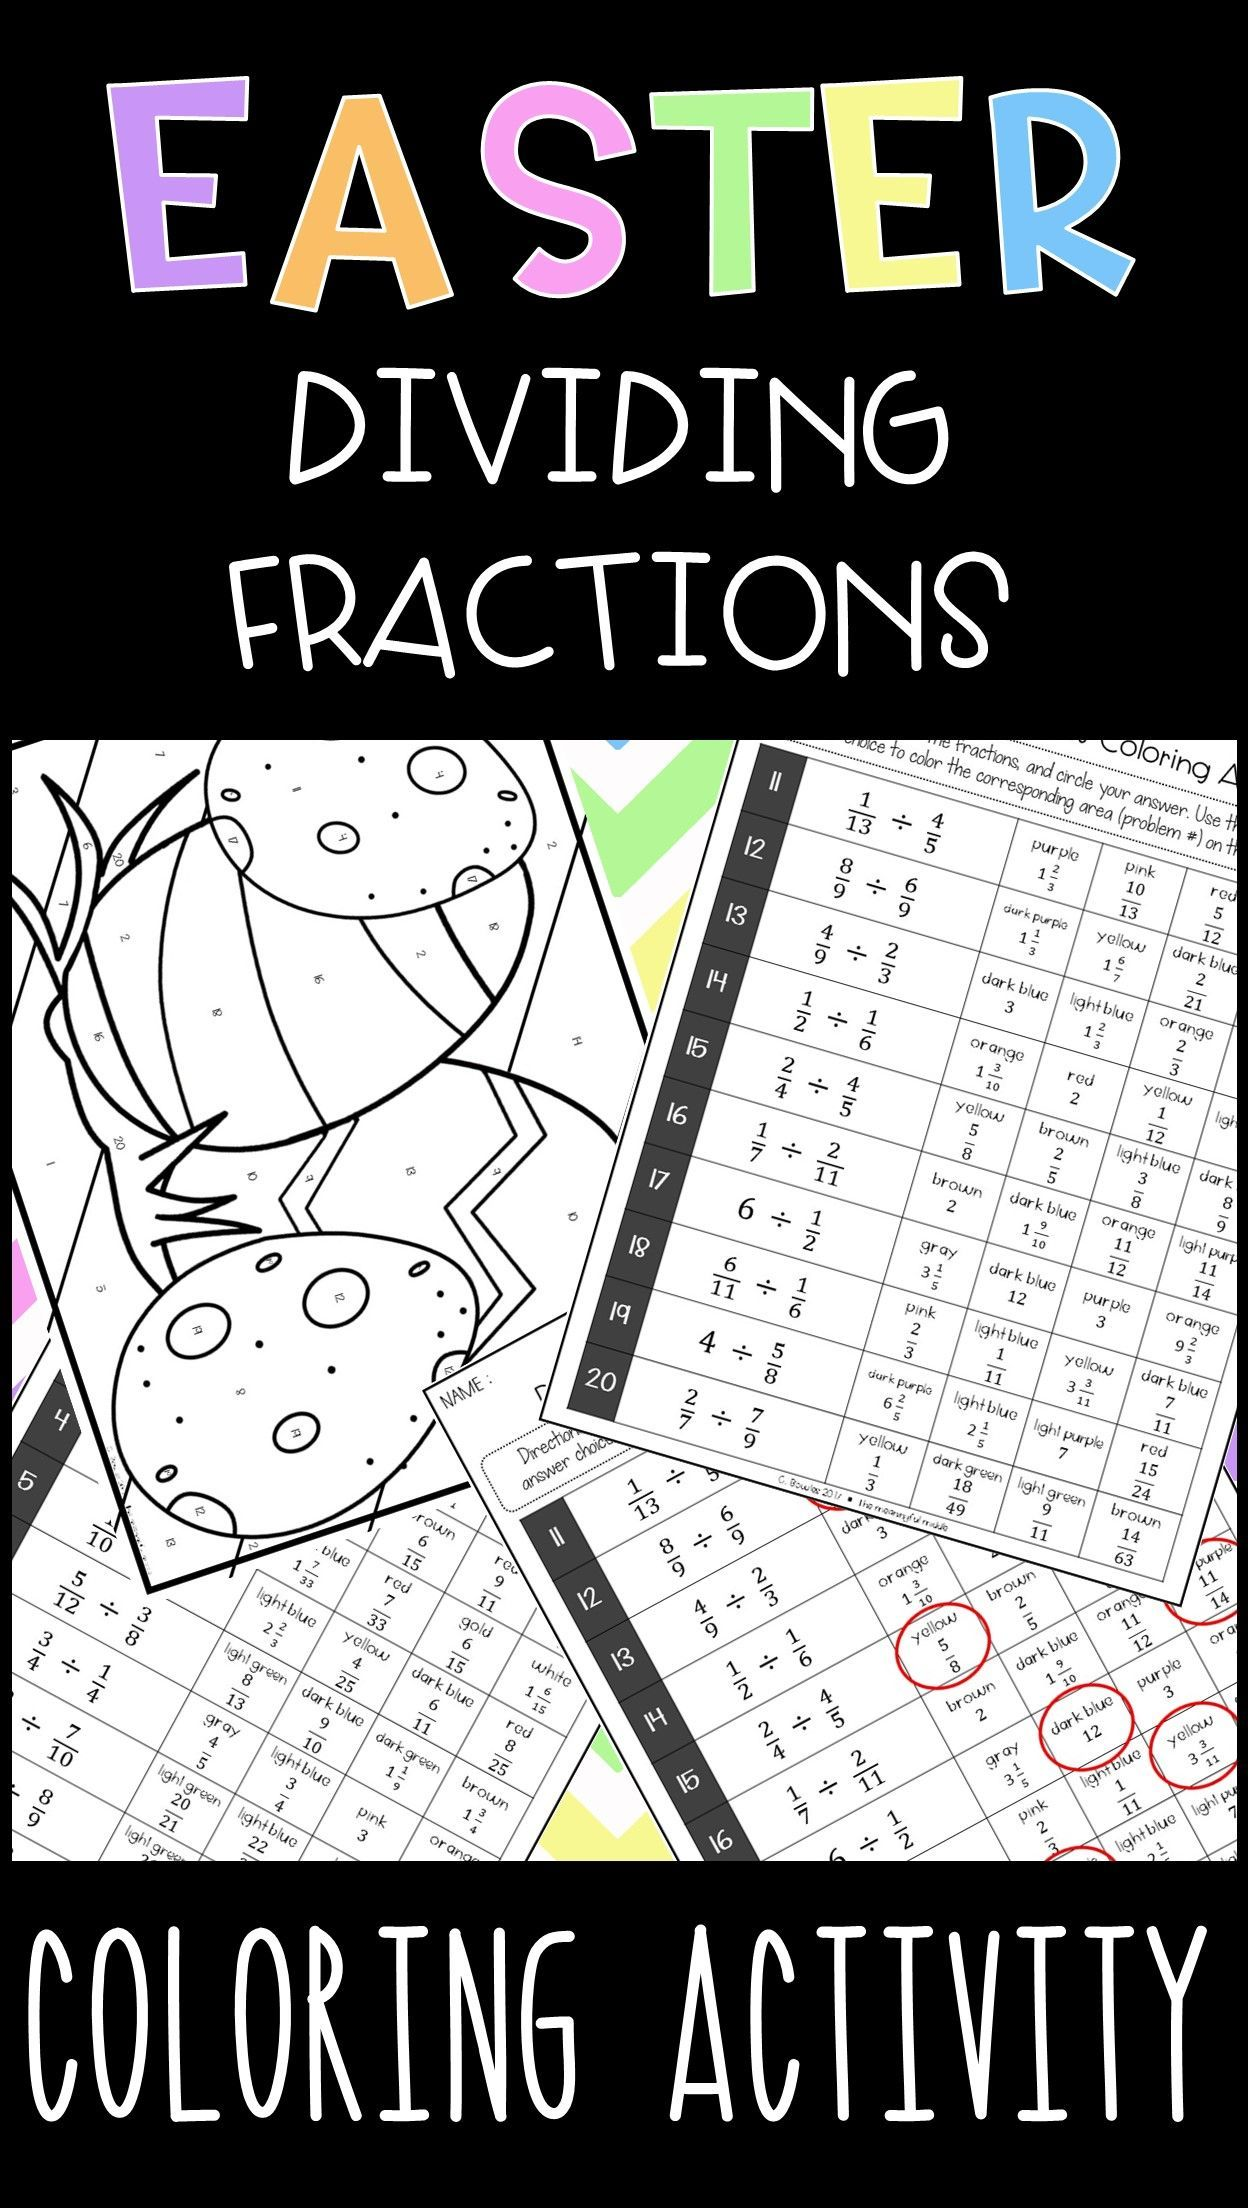 Easter Dividing Fractions Coloring Activity Tone In Writing Math Center Activities Teaching [ 2208 x 1248 Pixel ]